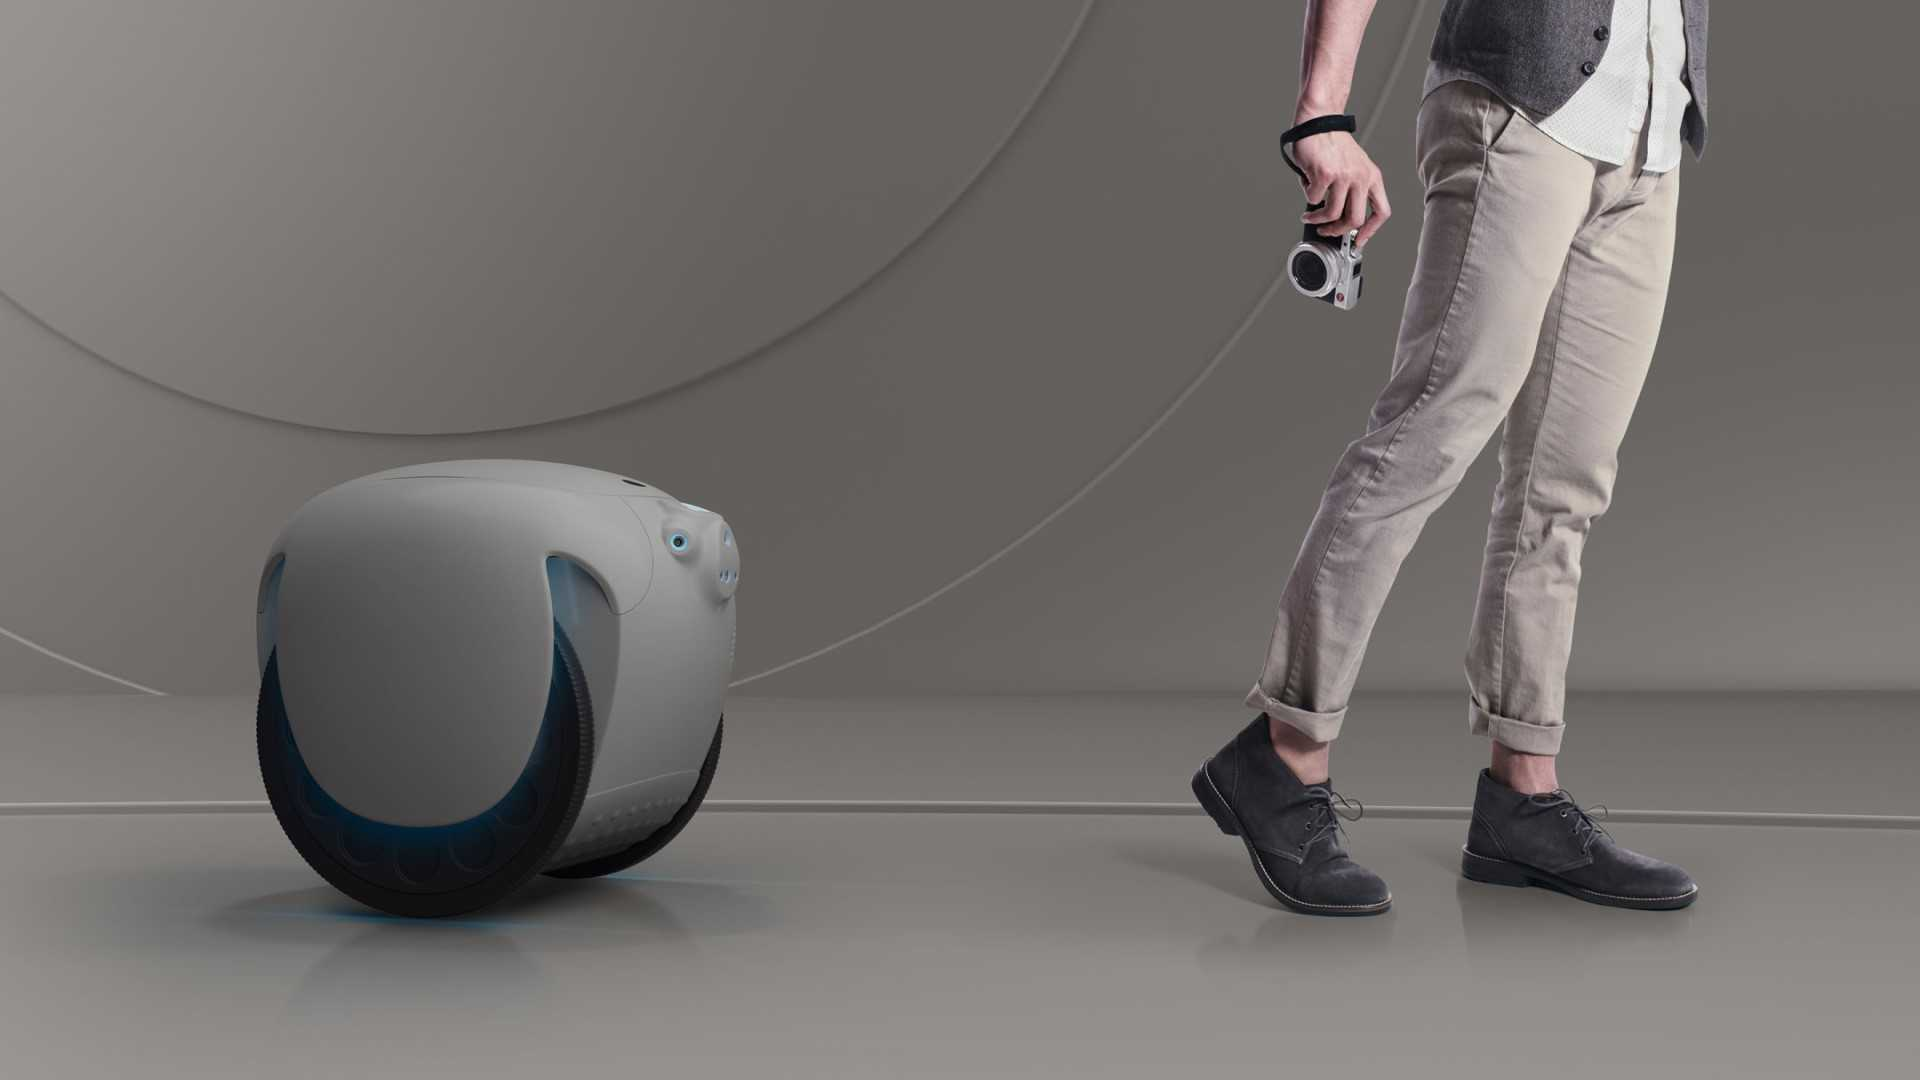 Piaggio brings autonomous mobility to everyone